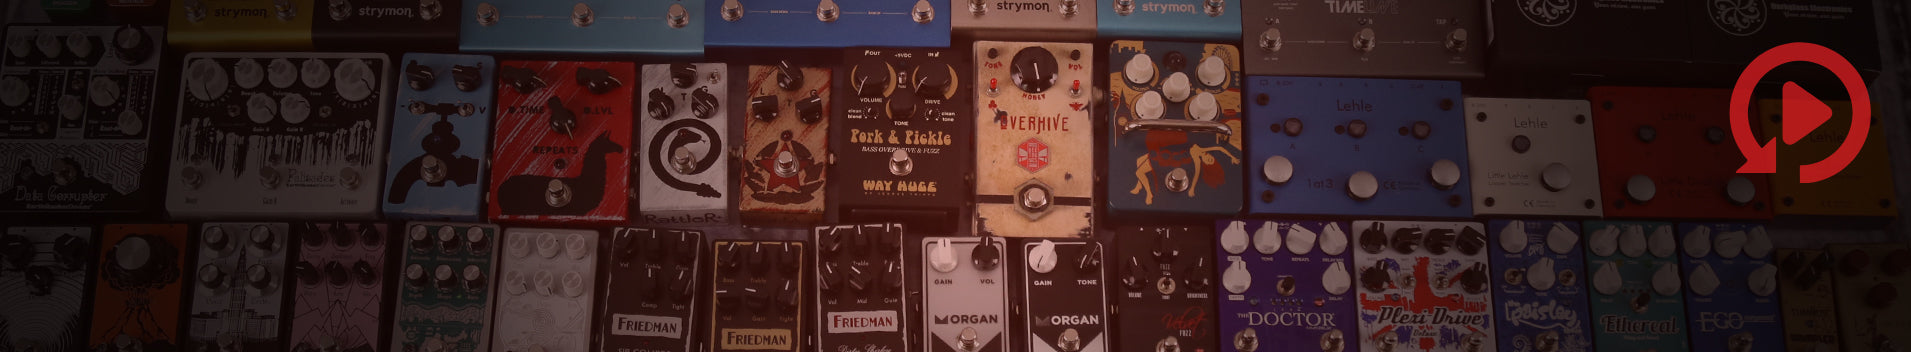 Bass Pedals and Effects